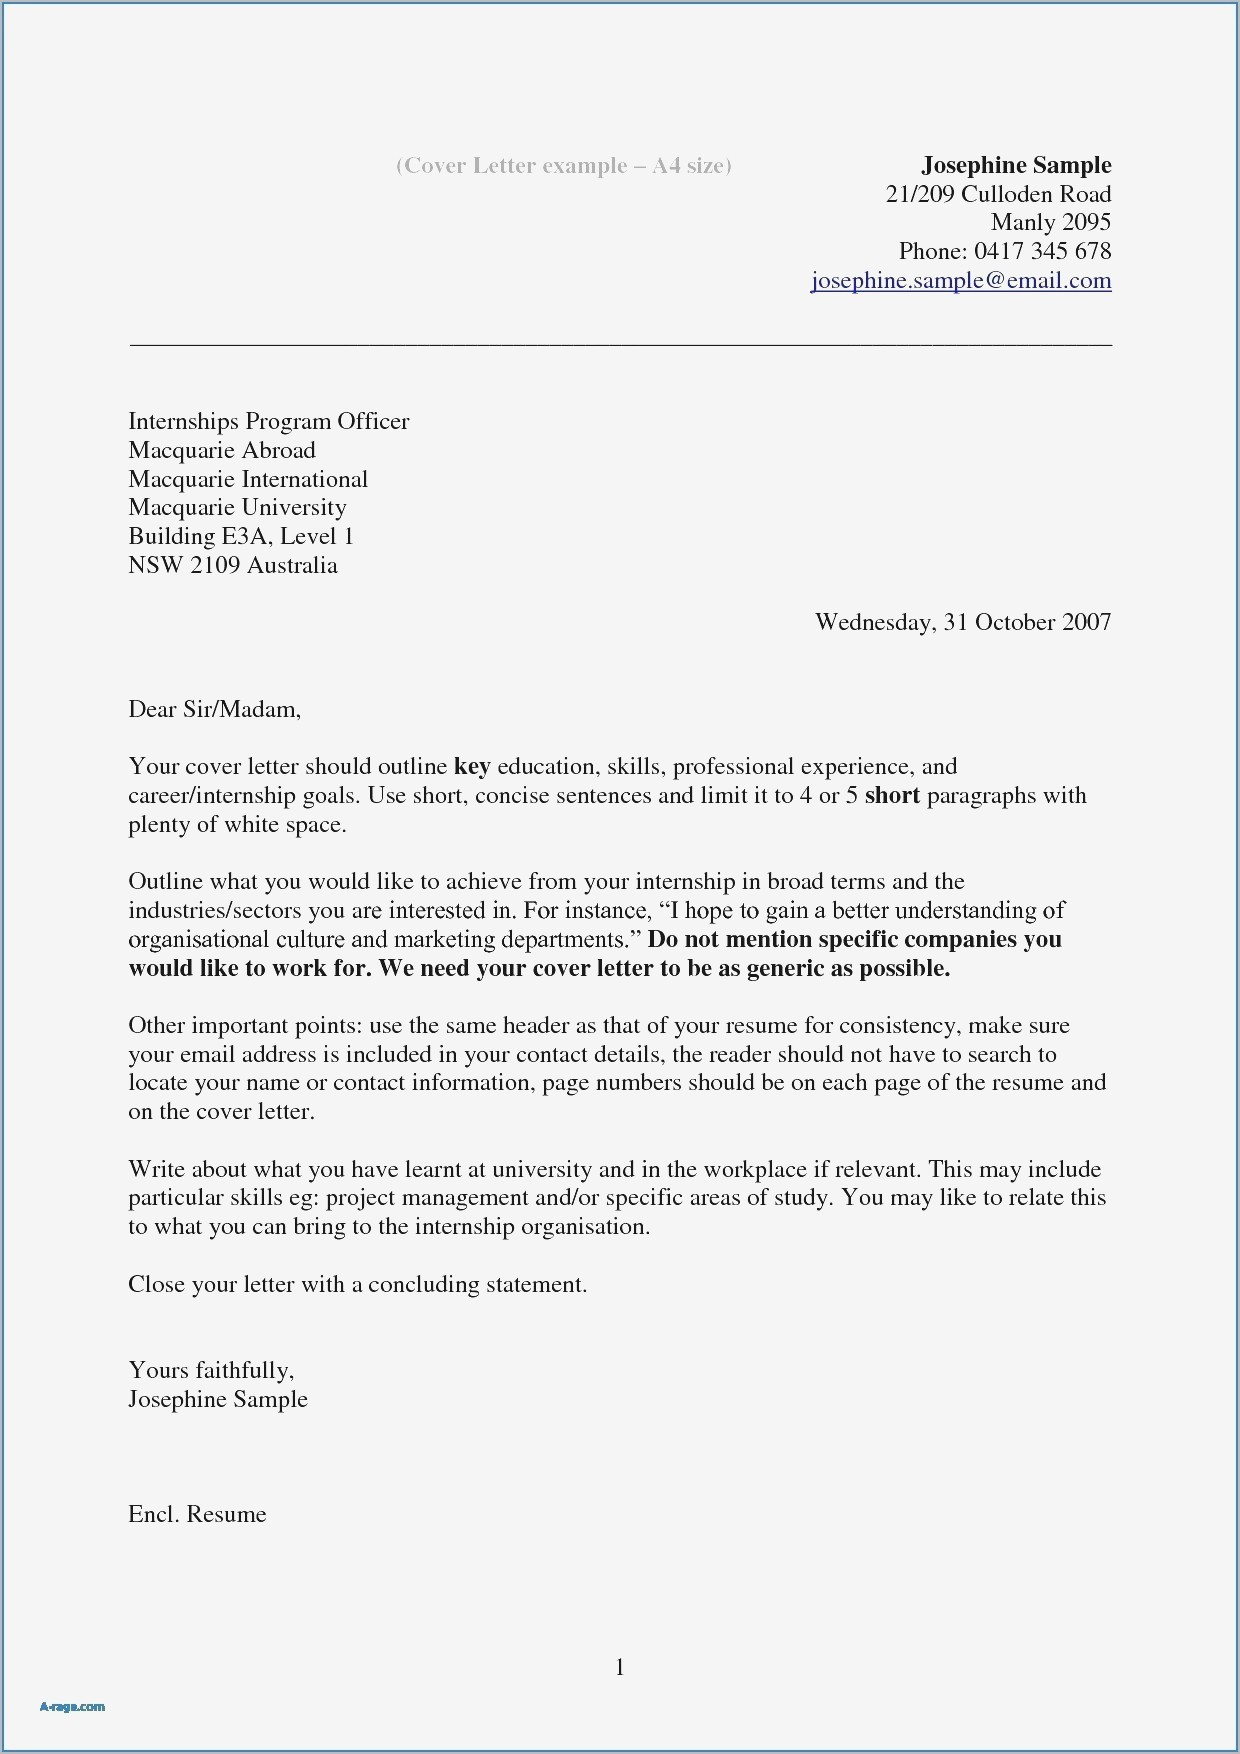 Hiring Letter Template - Cover Letter for Pany Not Hiring